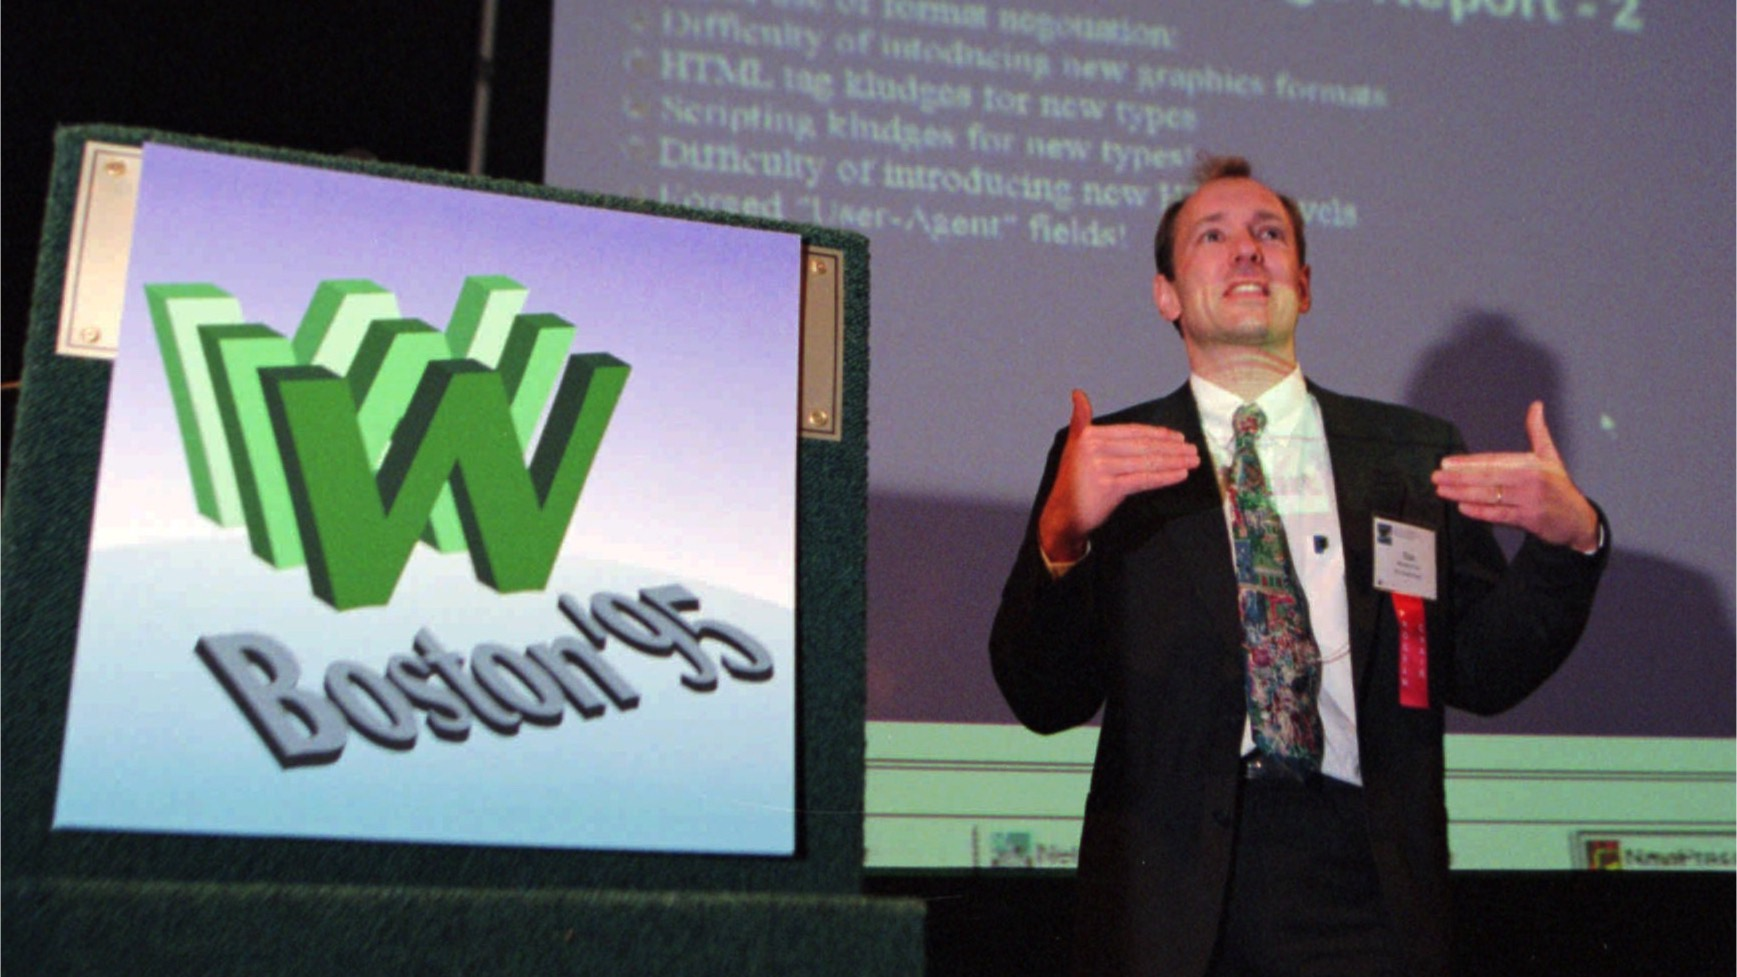 Tim Berners-Lee, inventor of the World Wide Web, address a crowd at the 4th international World Wide Web Conference in Boston Tuesday, Dec. 12, 1995.  The conference brought together 3,000 academic and corporate programmers that collaborate on technical standards.  (AP Photo/Jim Rogash)